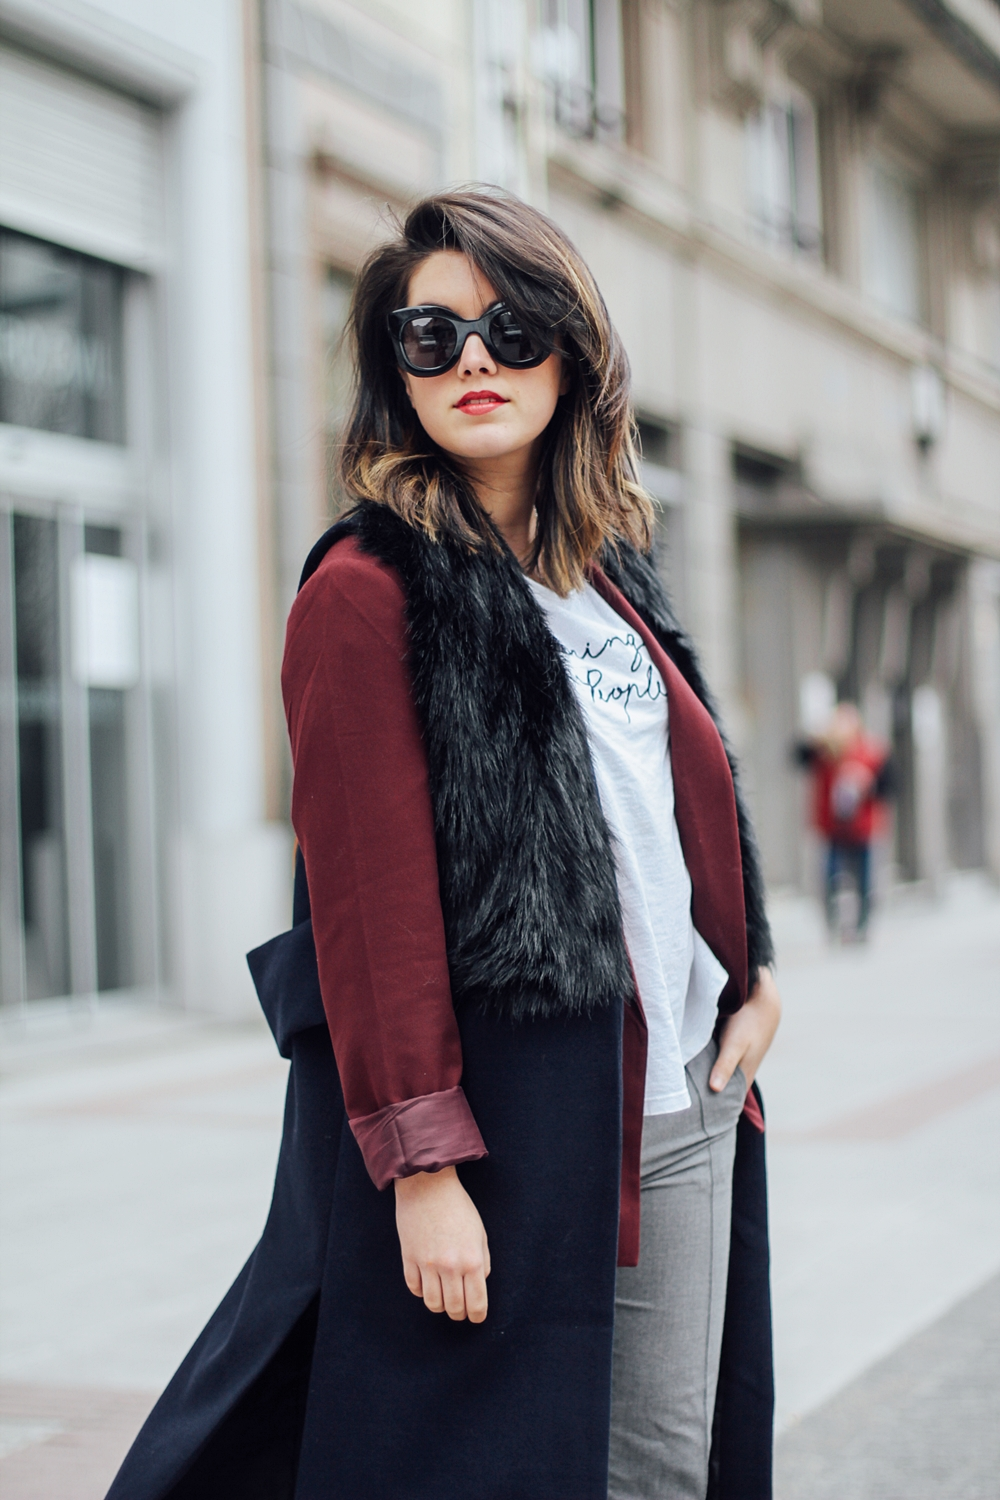 isabel marant sneakers bart etoile with faux fur vest and red blazer streetstyle myblueberrynightsblog